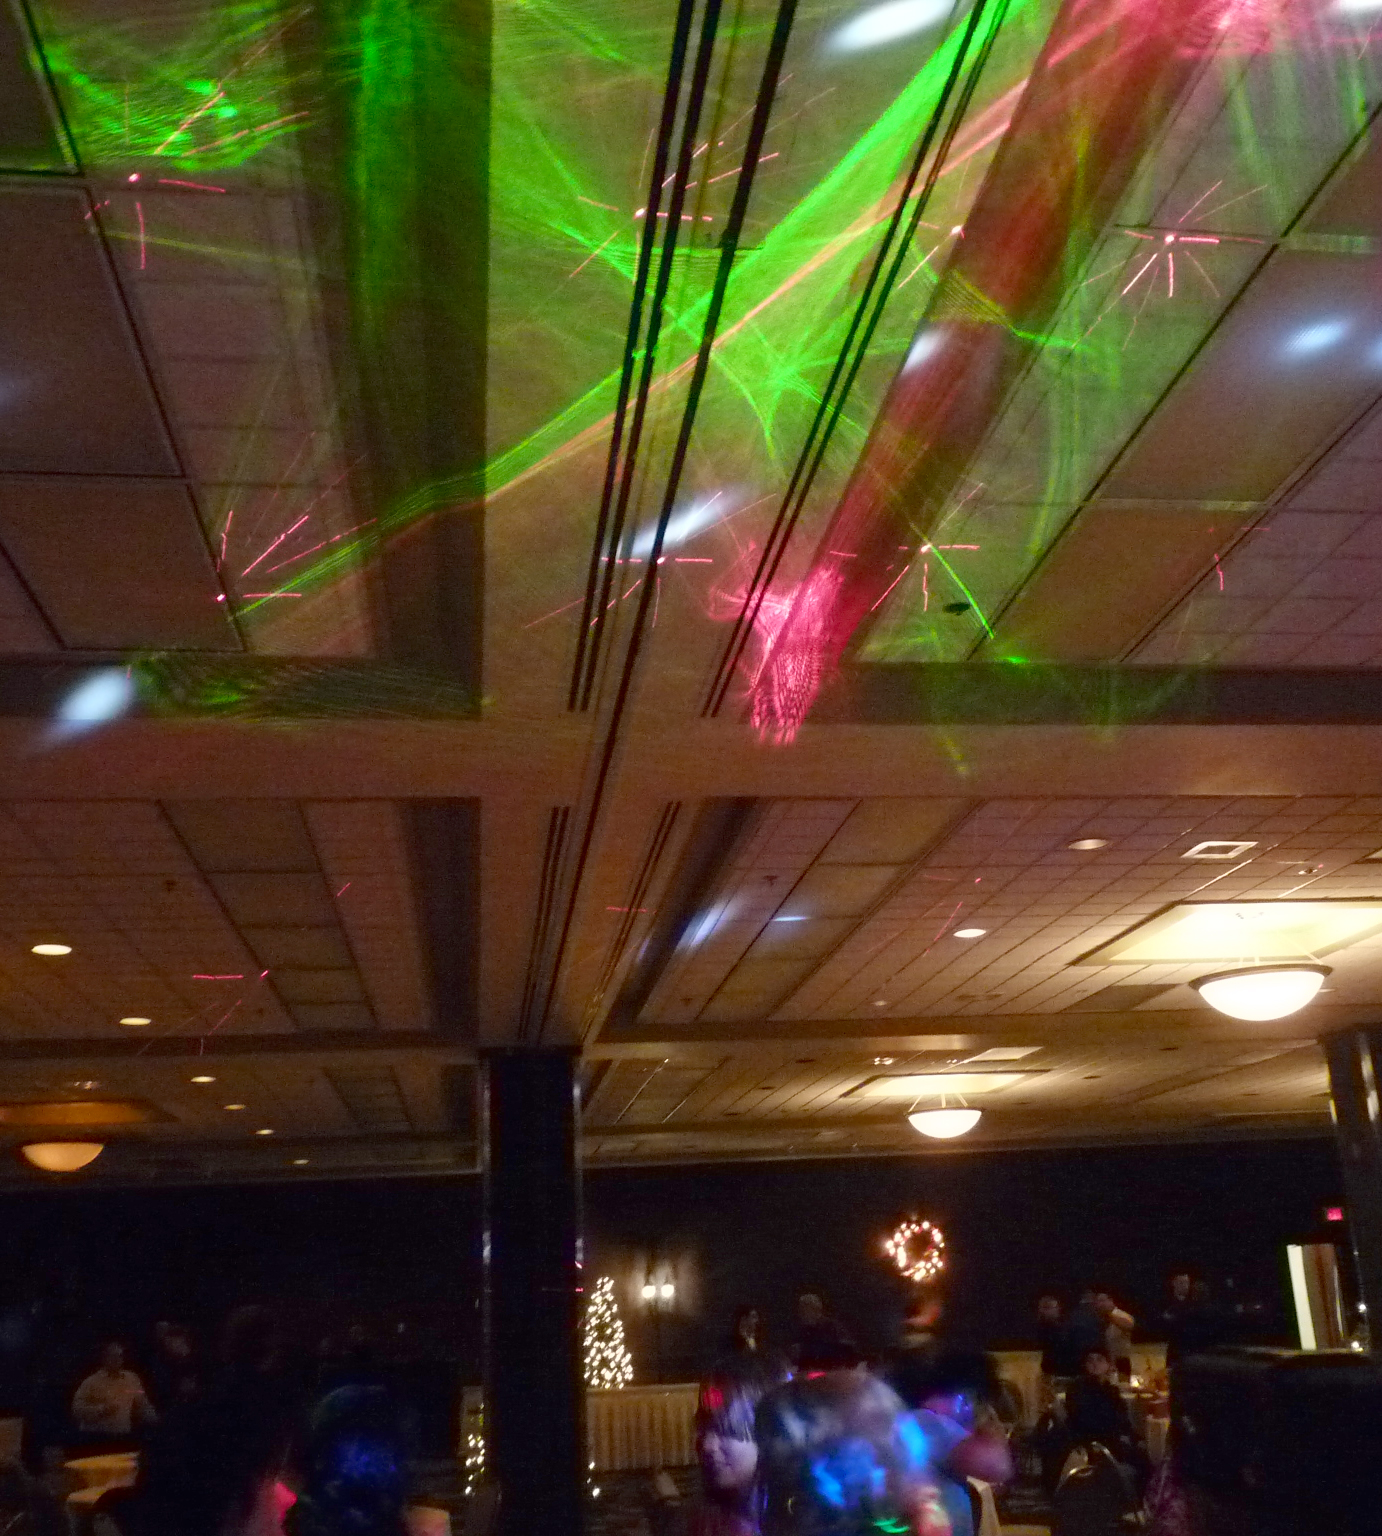 Cirrus Laser on the ceiling